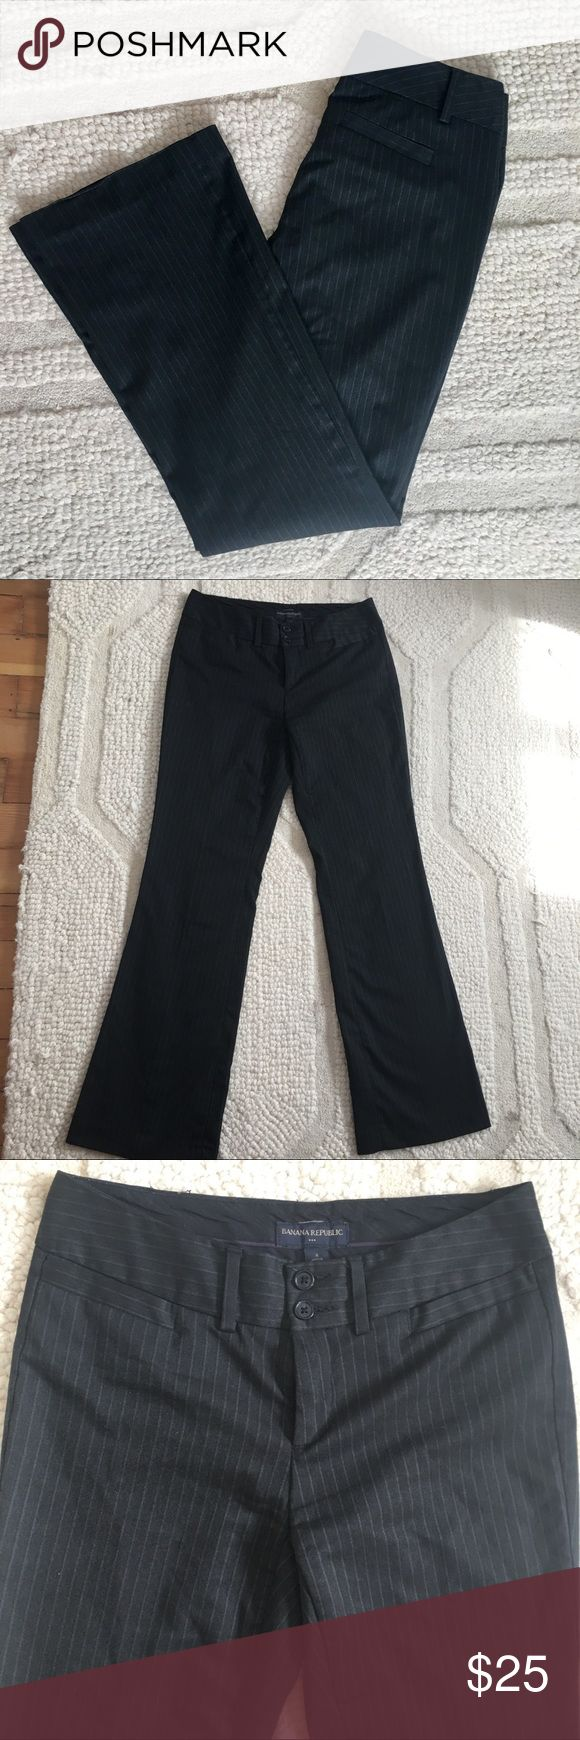 Banana Republic Trousers Slacks Pants Pin Stripes Banana Republic Trousers Slacks Pants Pin Stripes. Excellent used condition. The only wear is slightly on the bottom of the legs as shown in picture. Thanks for looking:) Banana Republic Pants Trousers